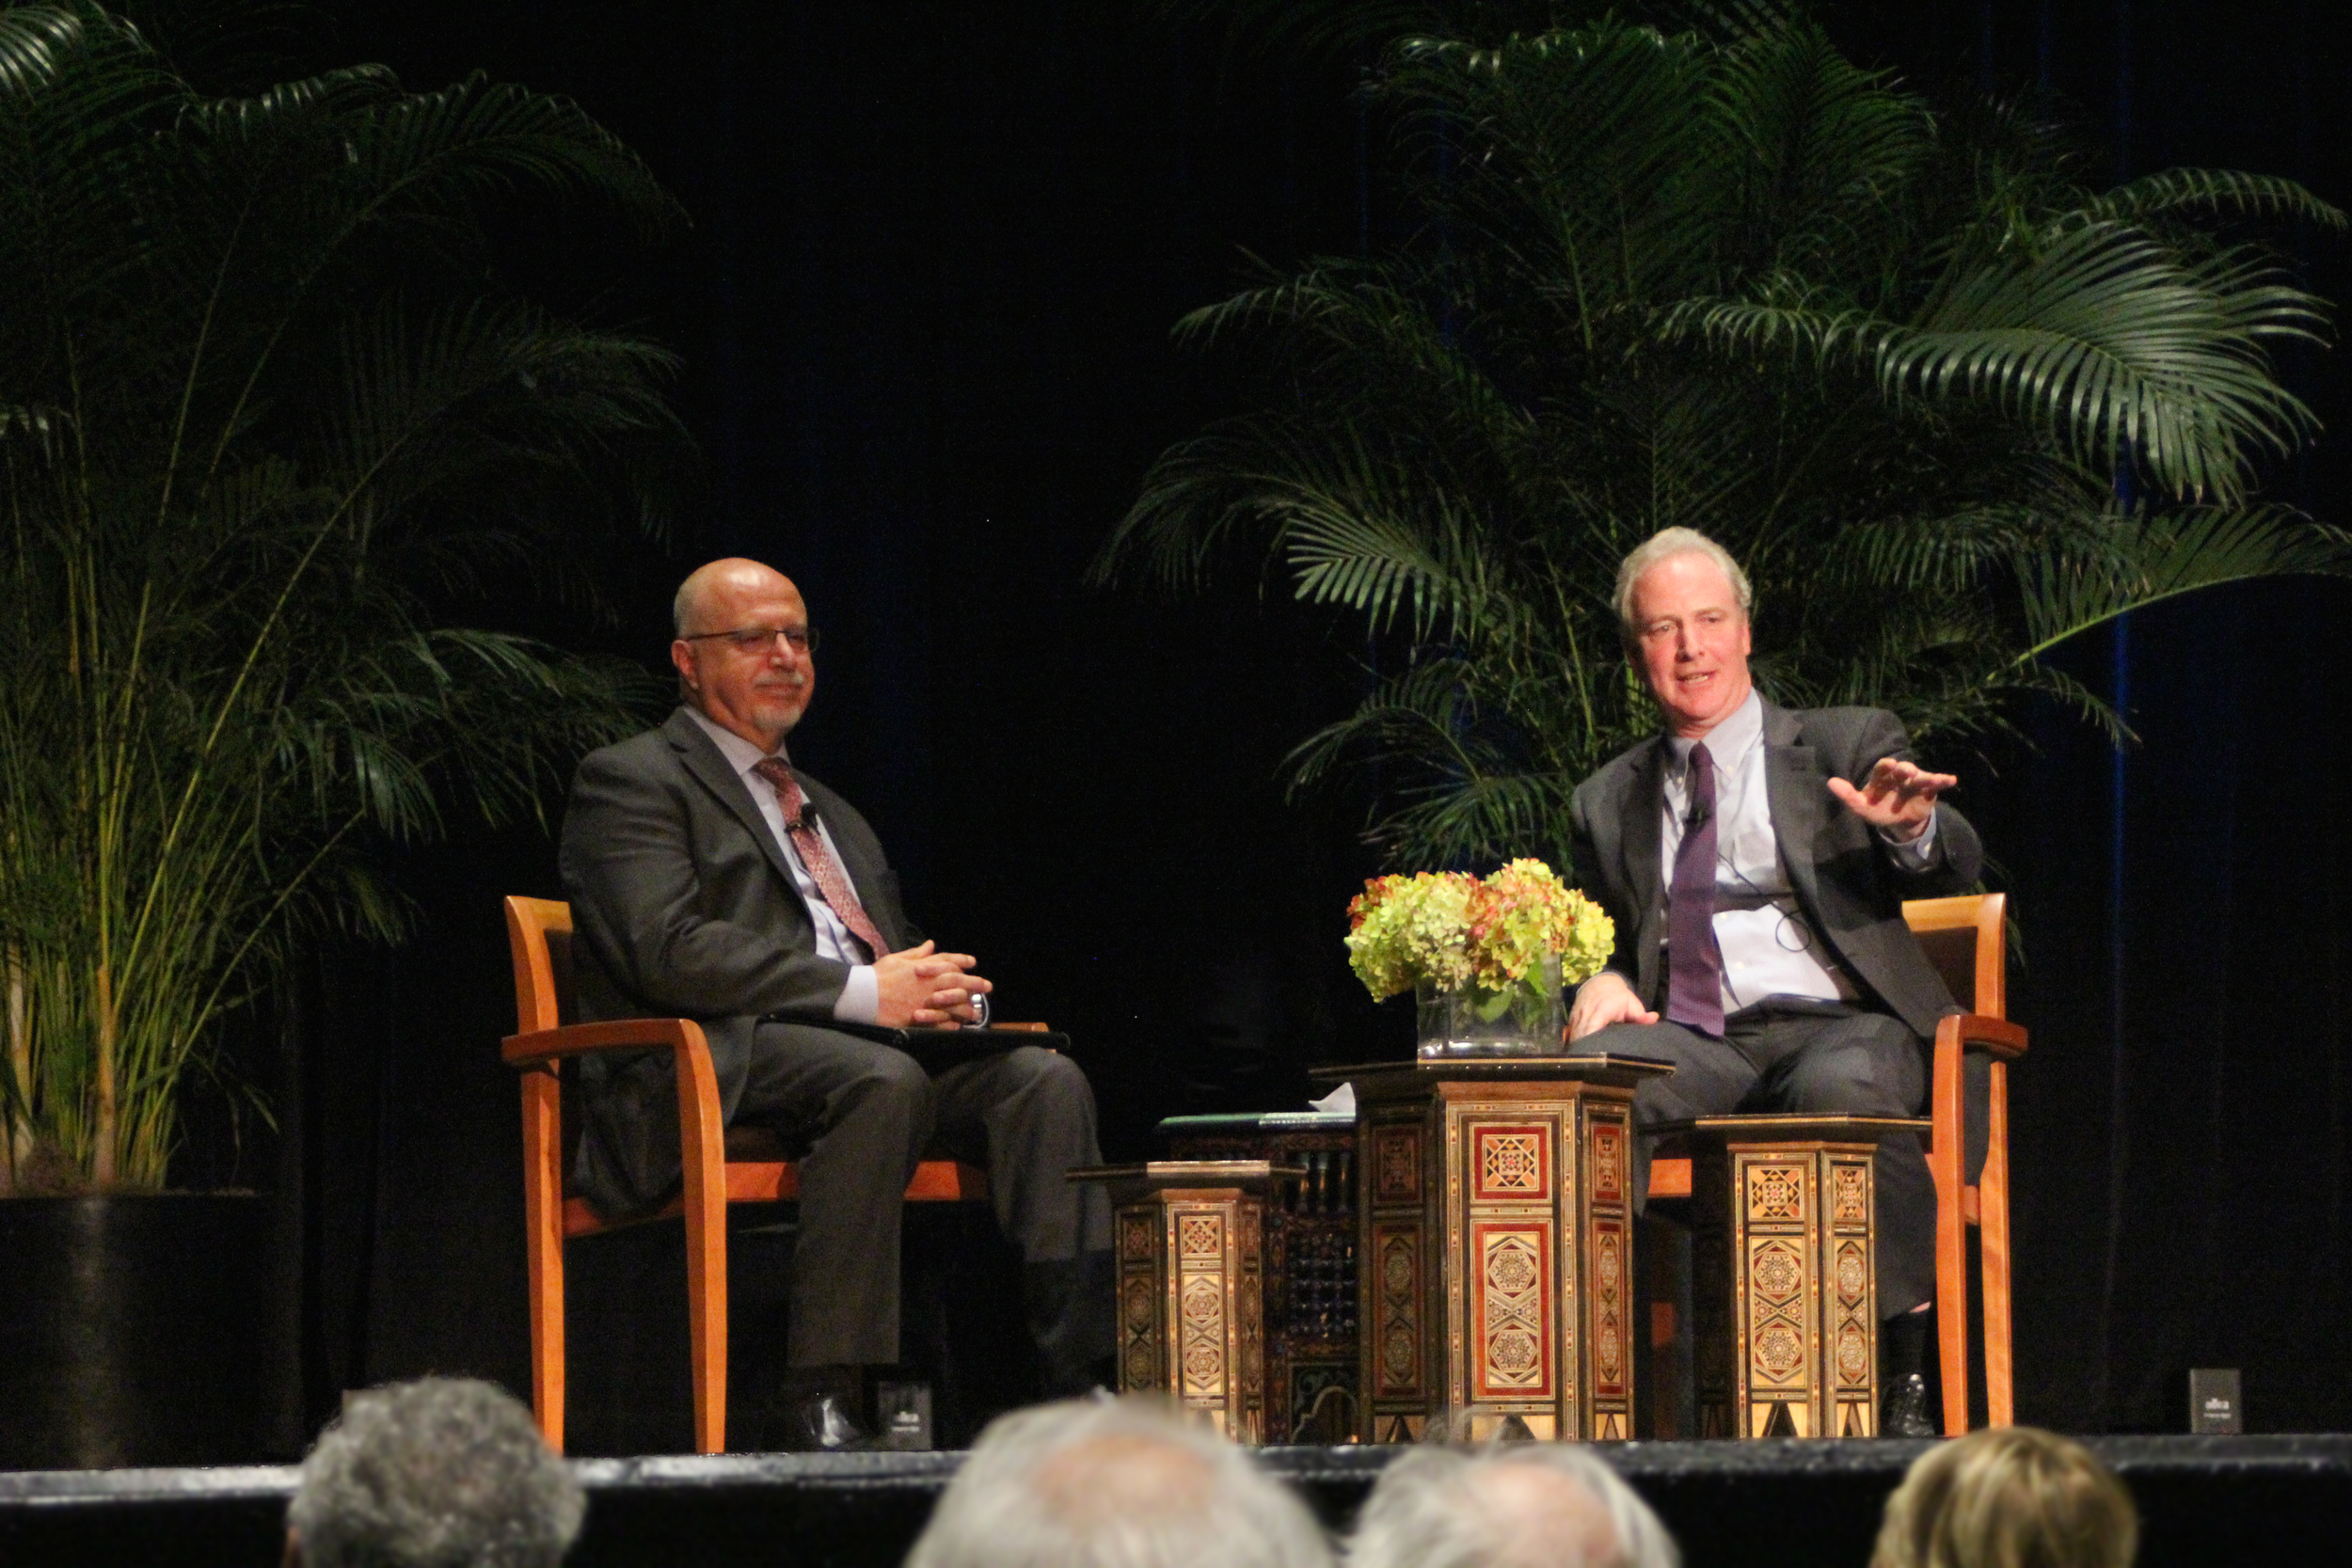 Sen. Chris Van Hollen and Shibley Telhami discuss issues related to the political climate of the country at the Anwar Sadat Forum. Photo: Cameron Jackson